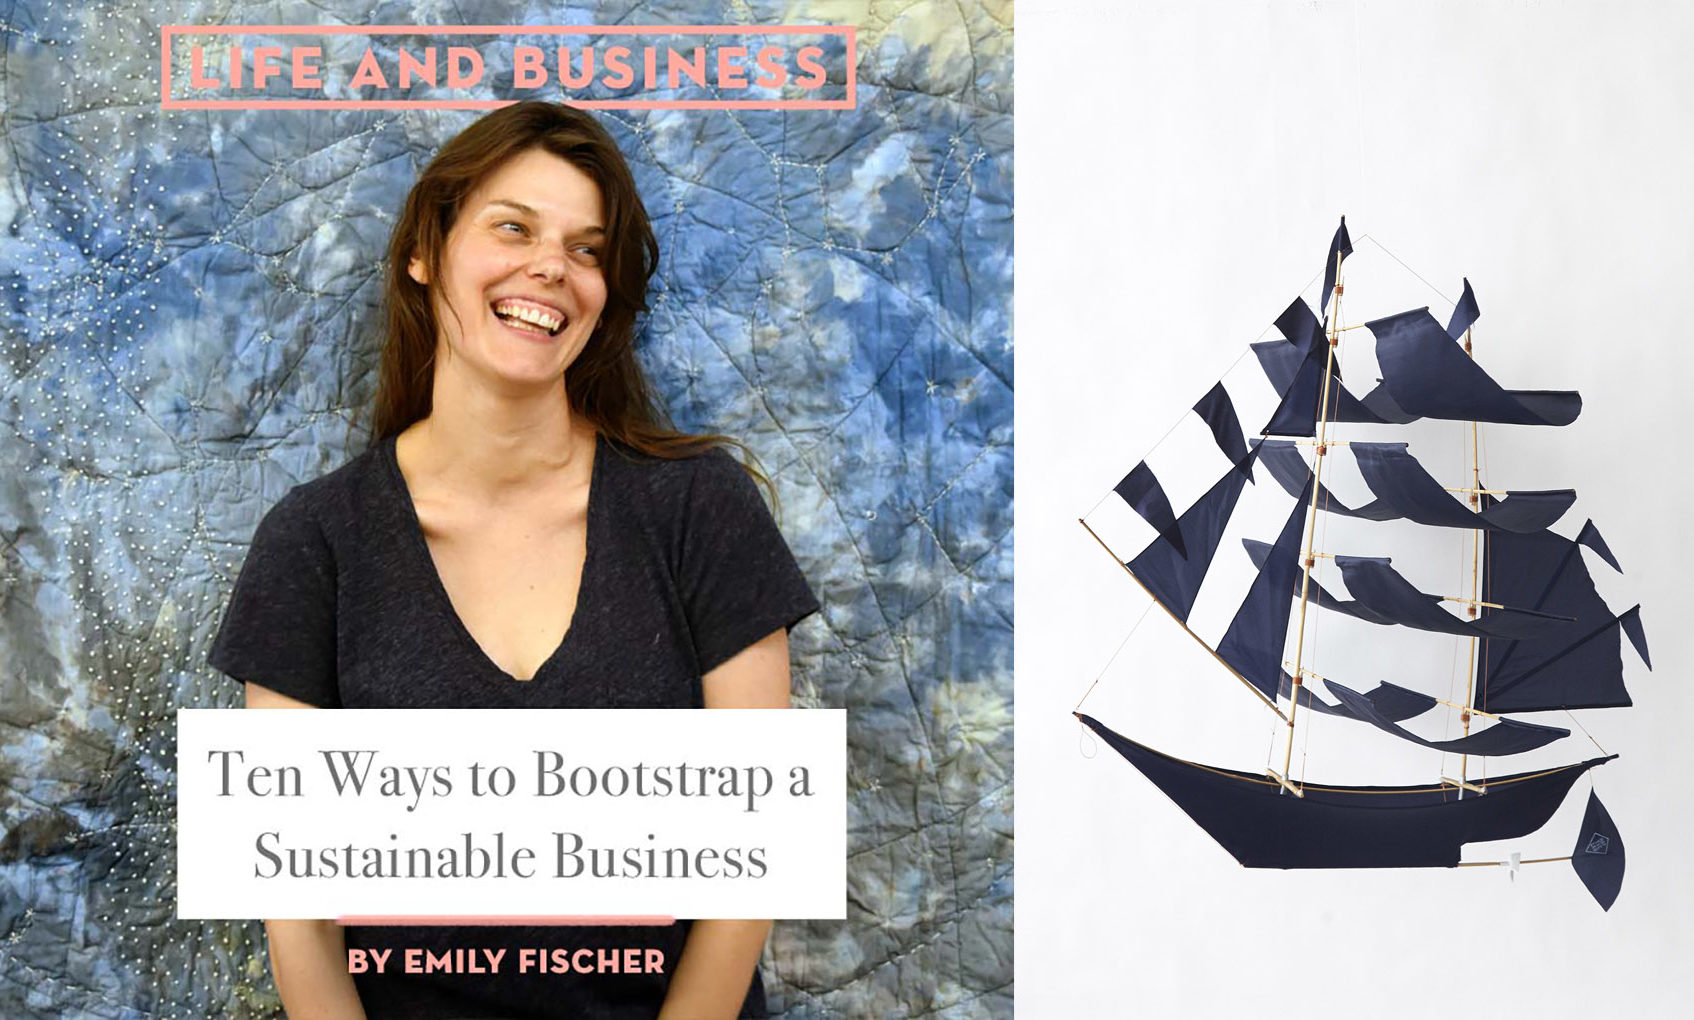 Top 20 Business Posts of All Time: #6 Ten Ways to Bootstrap a Sustainable Business